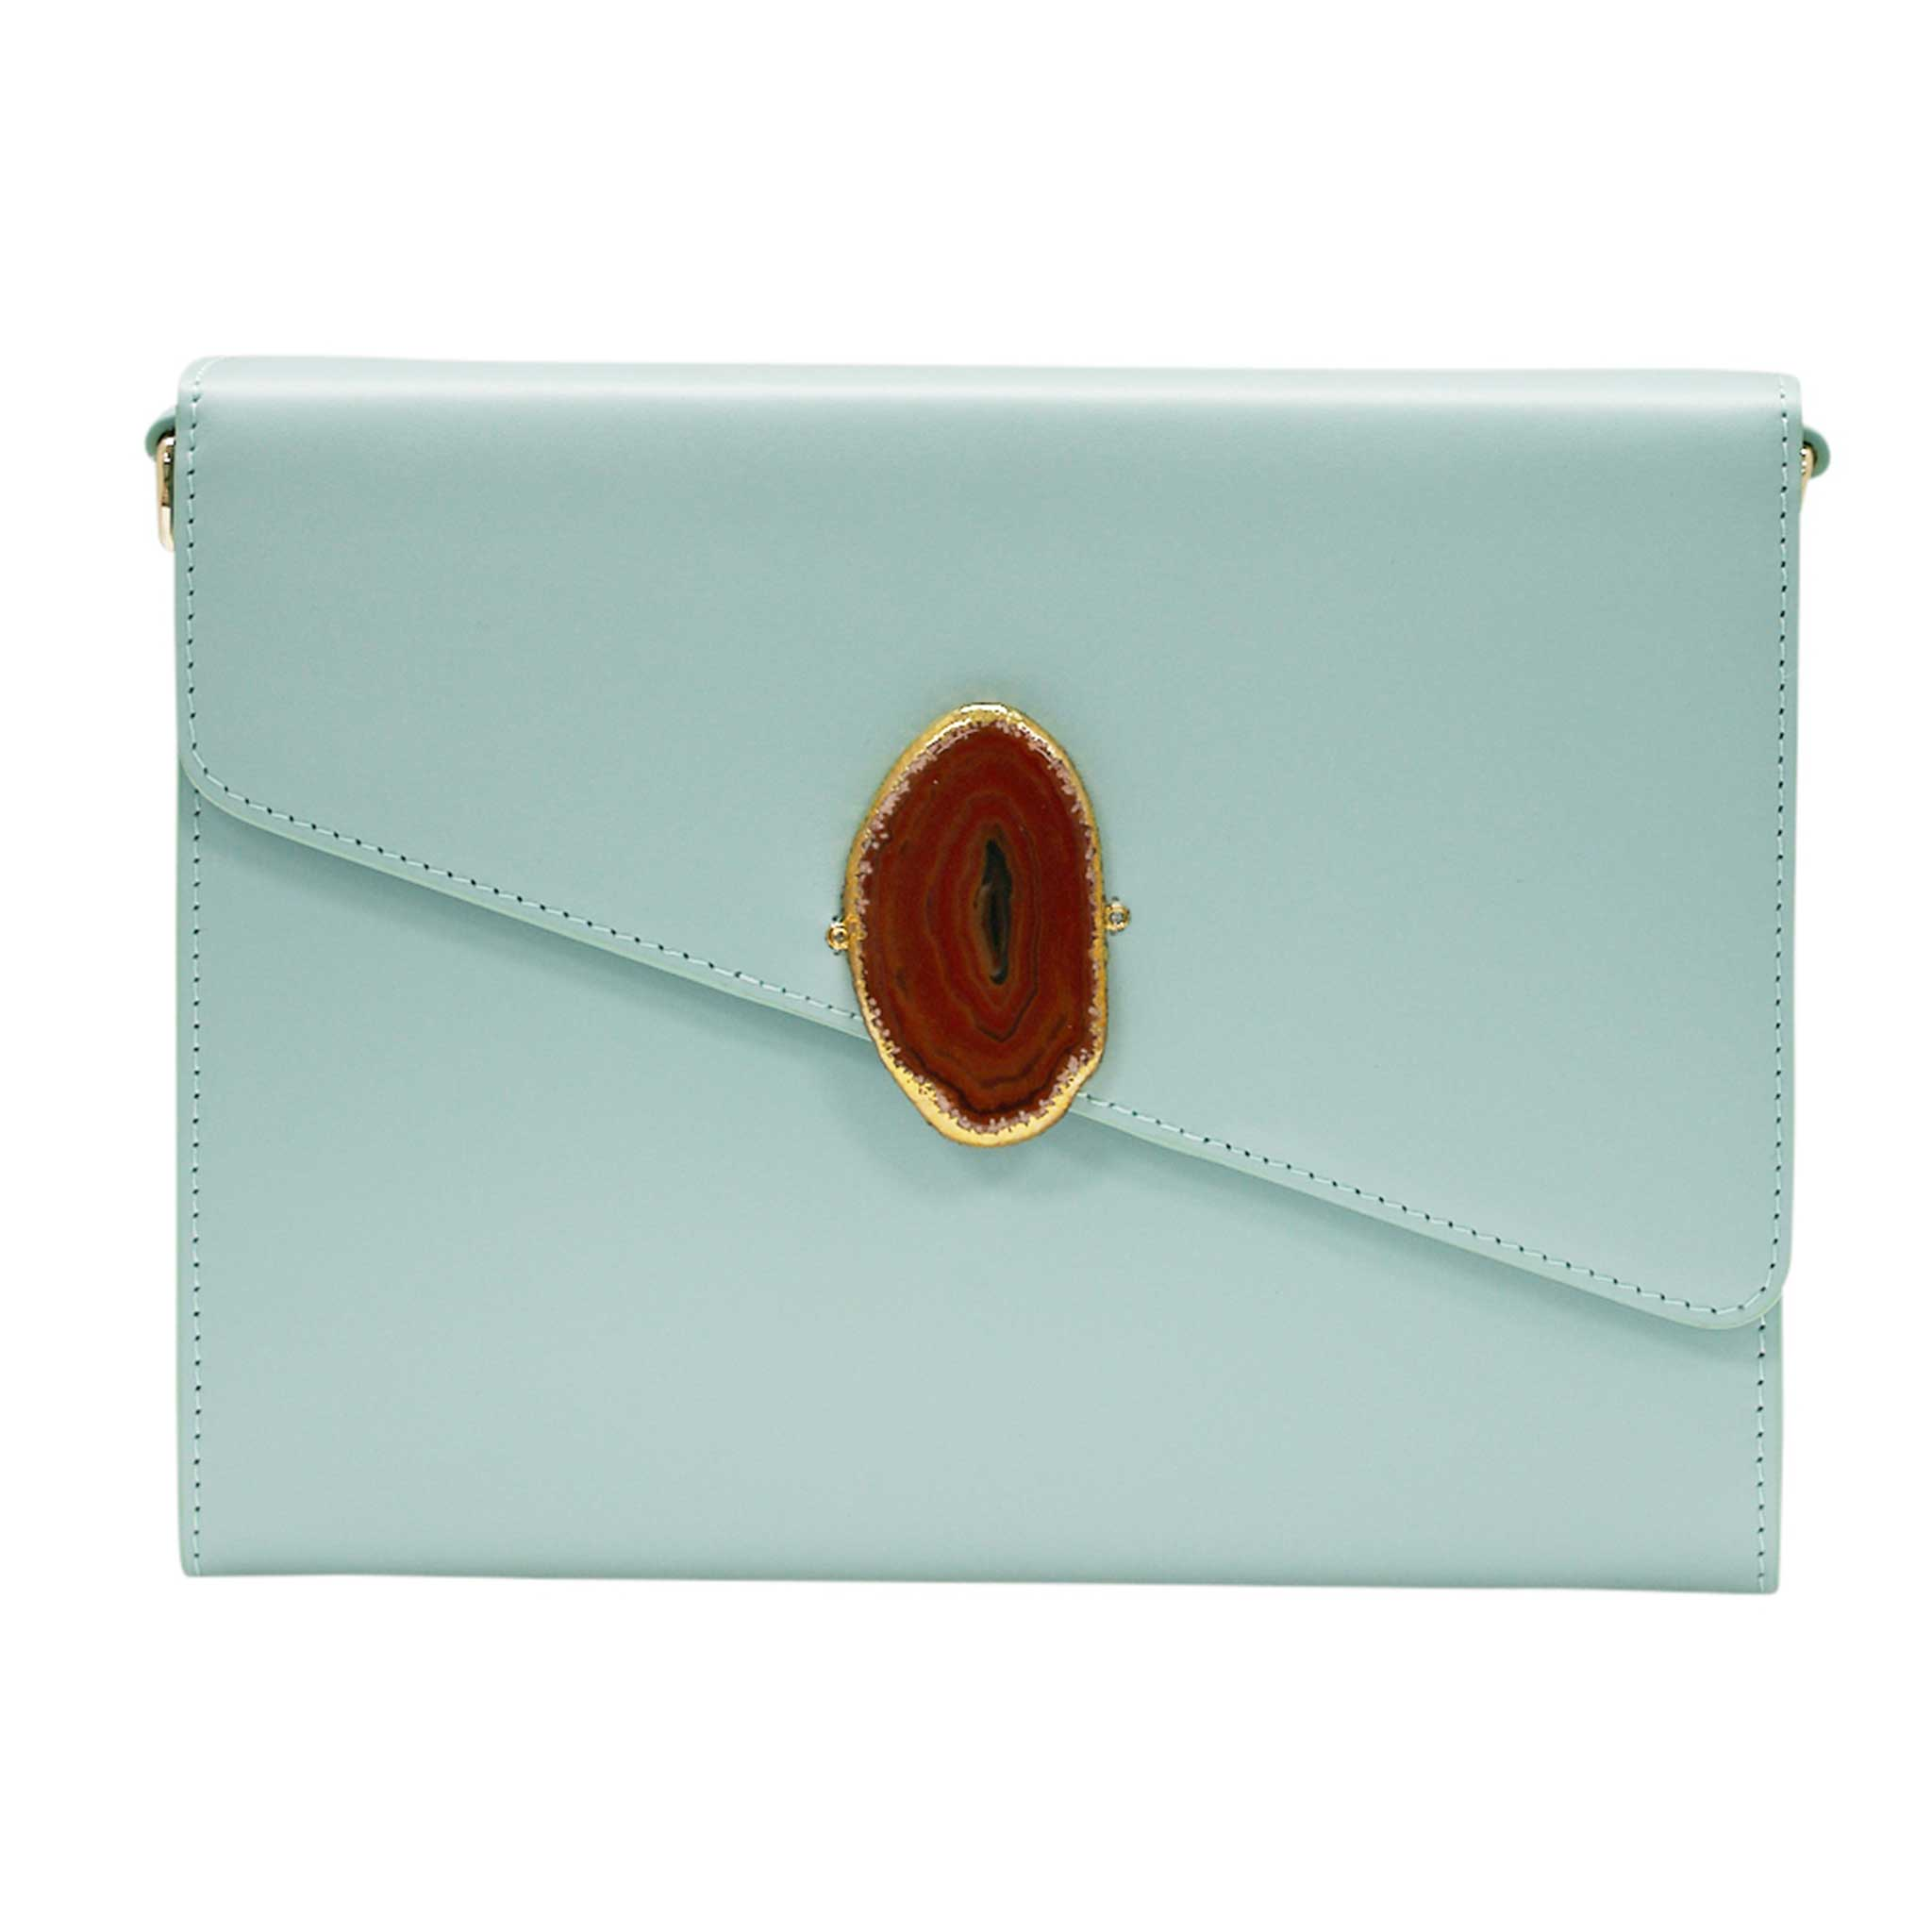 LOVED BAG - MOONSTONE WHITE LEATHER WITH BROWN AGATE - 1.02.004.032